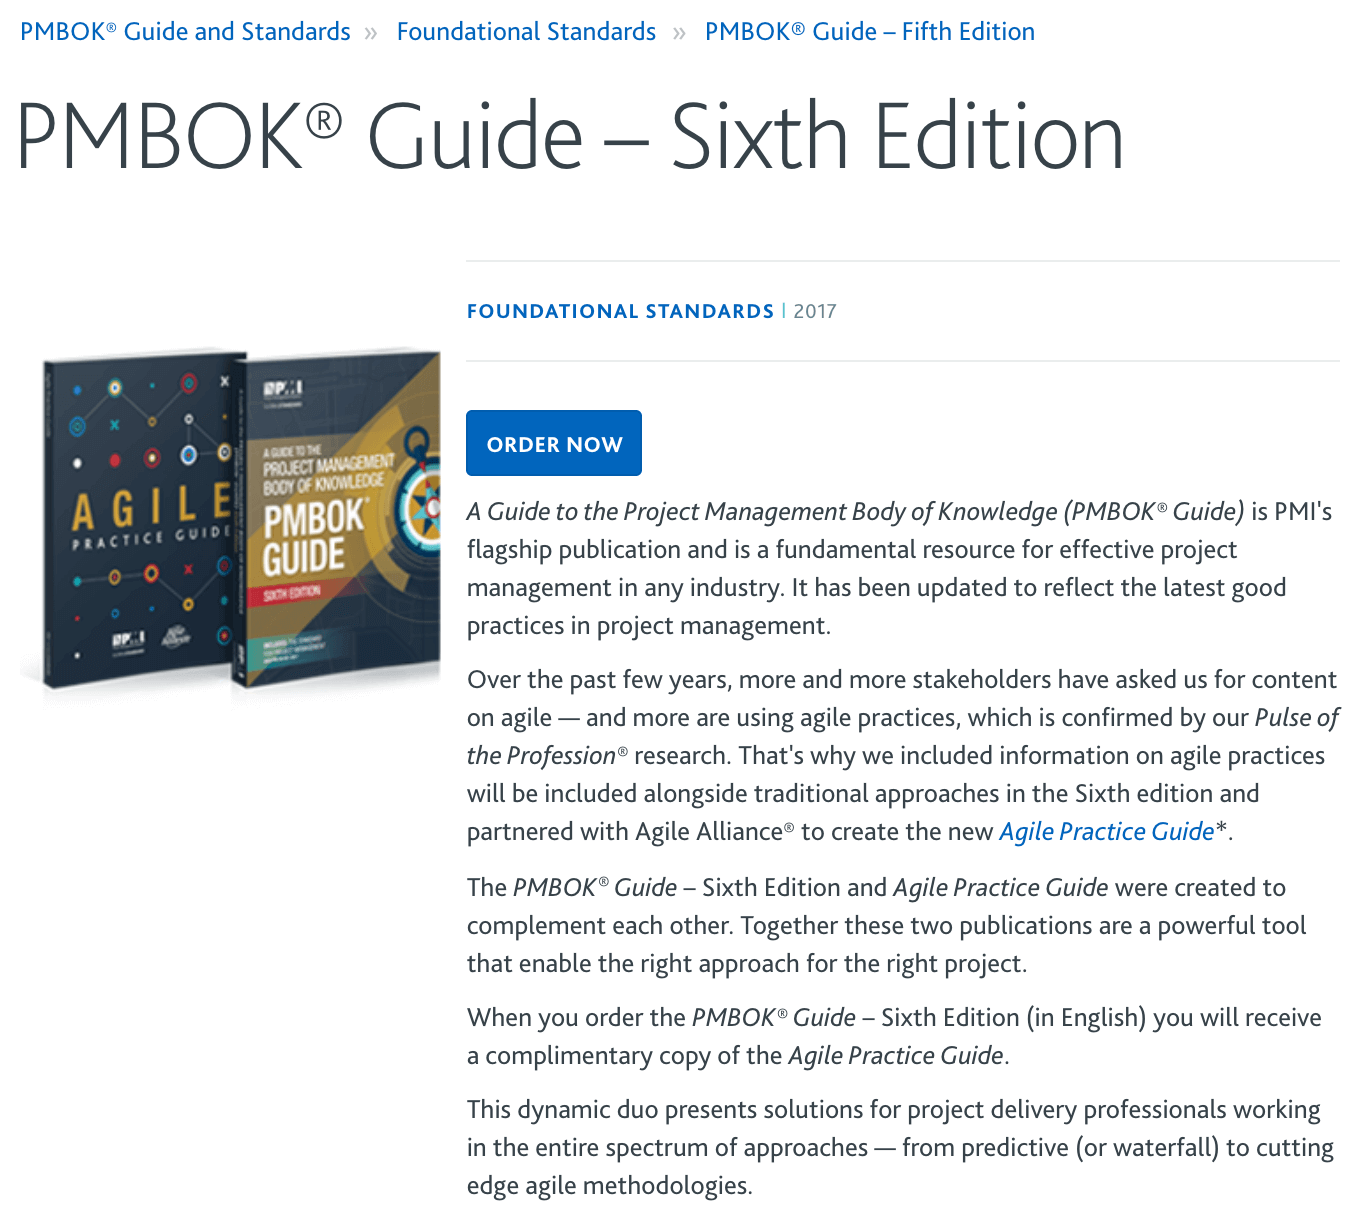 PMBOK Guide 6th Edition Download Page